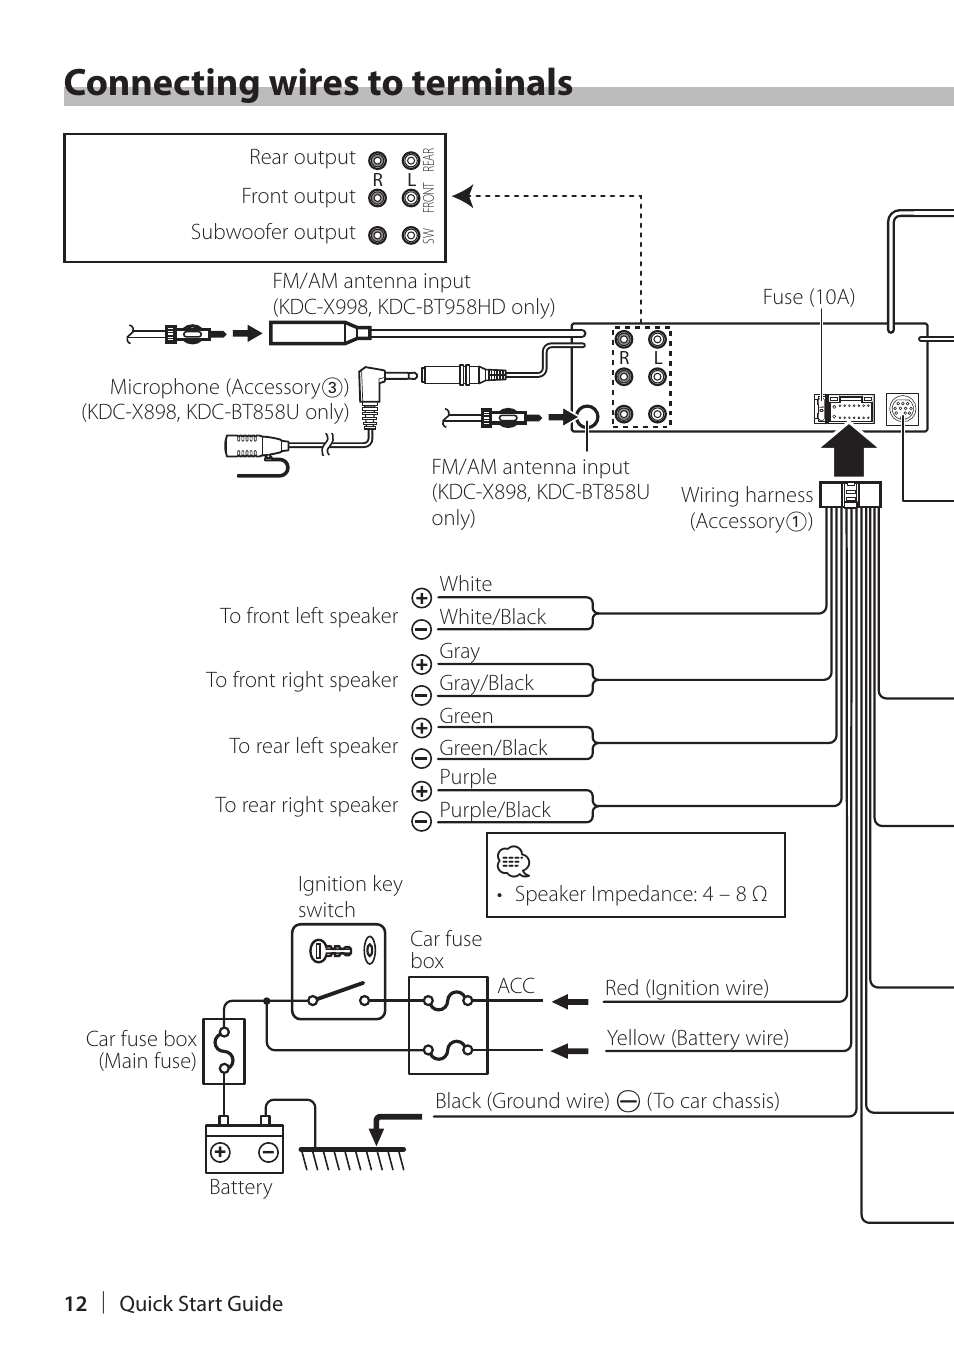 Kenwood Ddx512 Wiring Harness Diagram - Somurich.com on kenwood power supply, kenwood instruction manual, kenwood remote control, kenwood ddx6019, kenwood wiring-diagram,